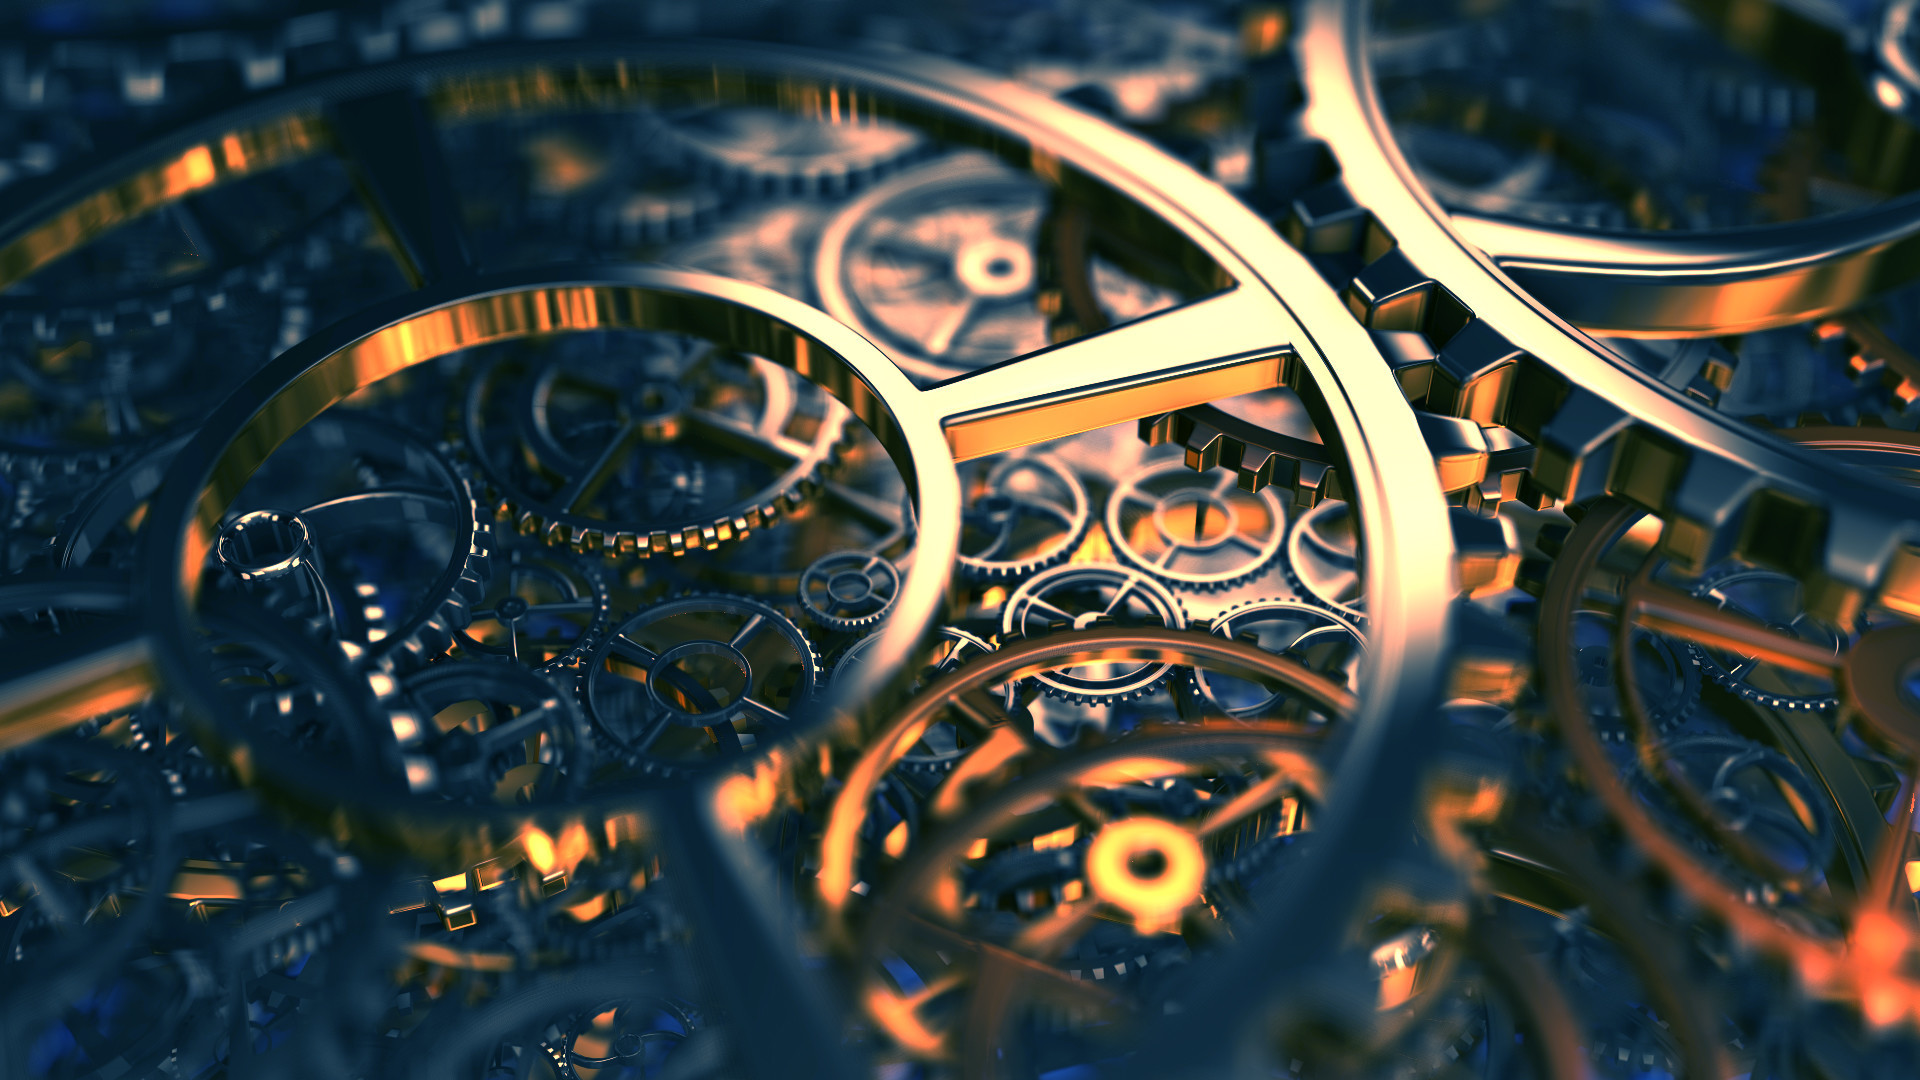 Mechanical Wallpaper HD 77 Images